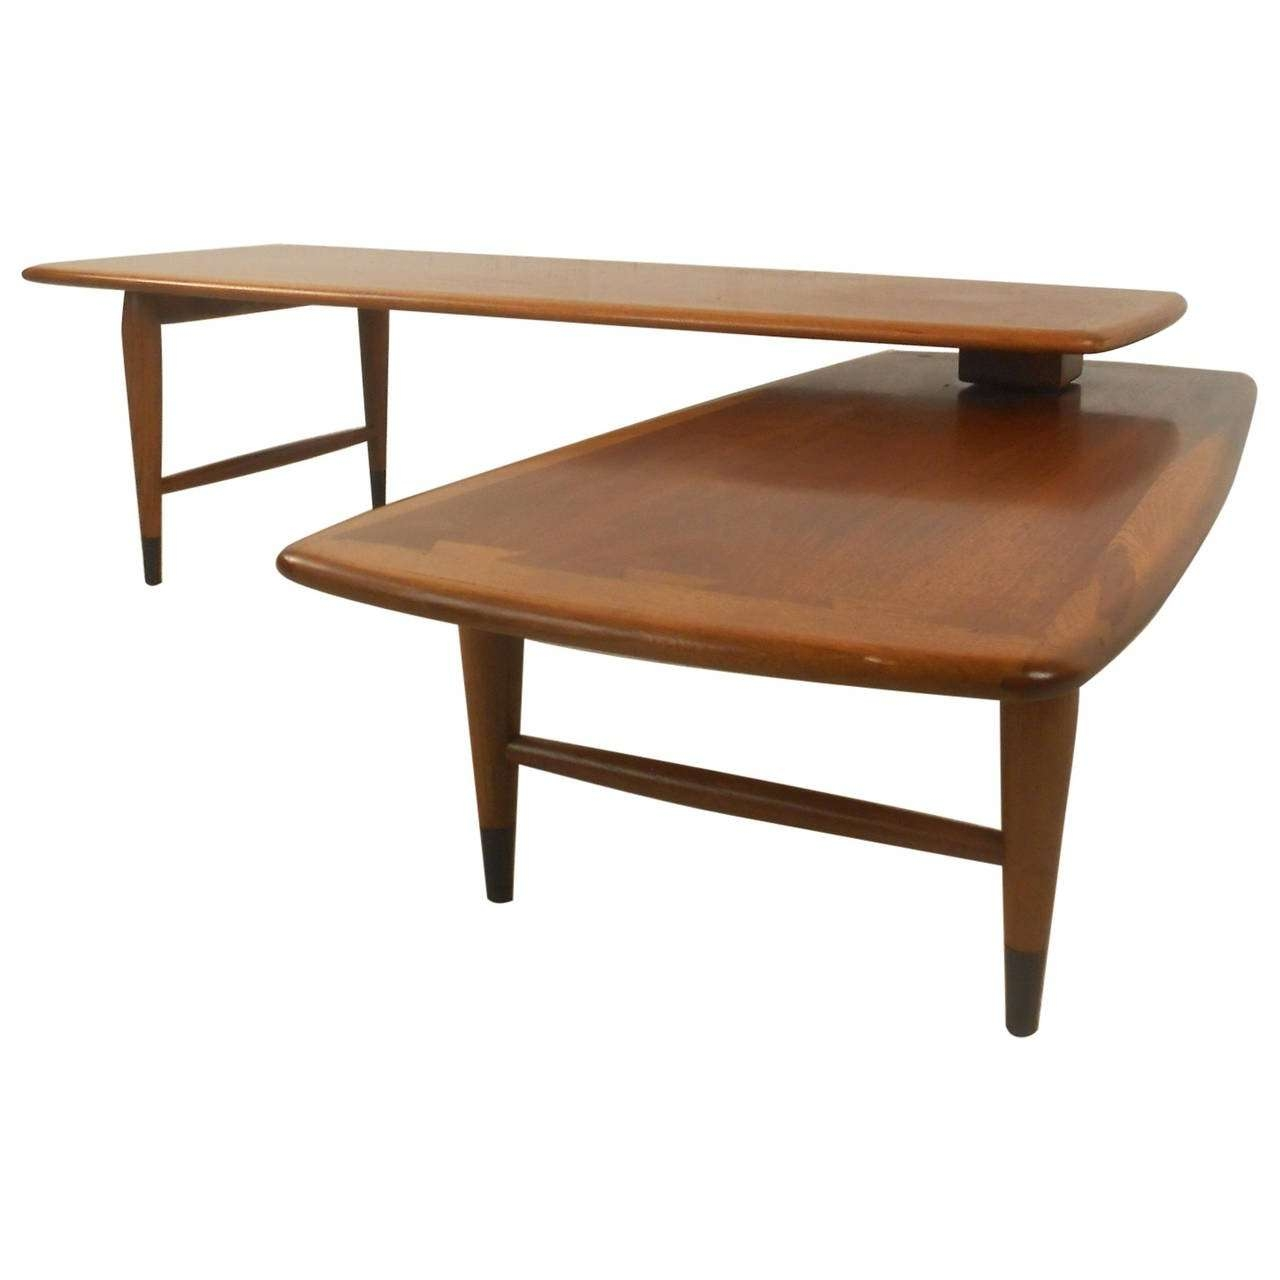 Well Liked L Shaped Coffee Tables Inside Mid Century Modern Switchblade Coffee Tablelane For Sale At (View 8 of 20)